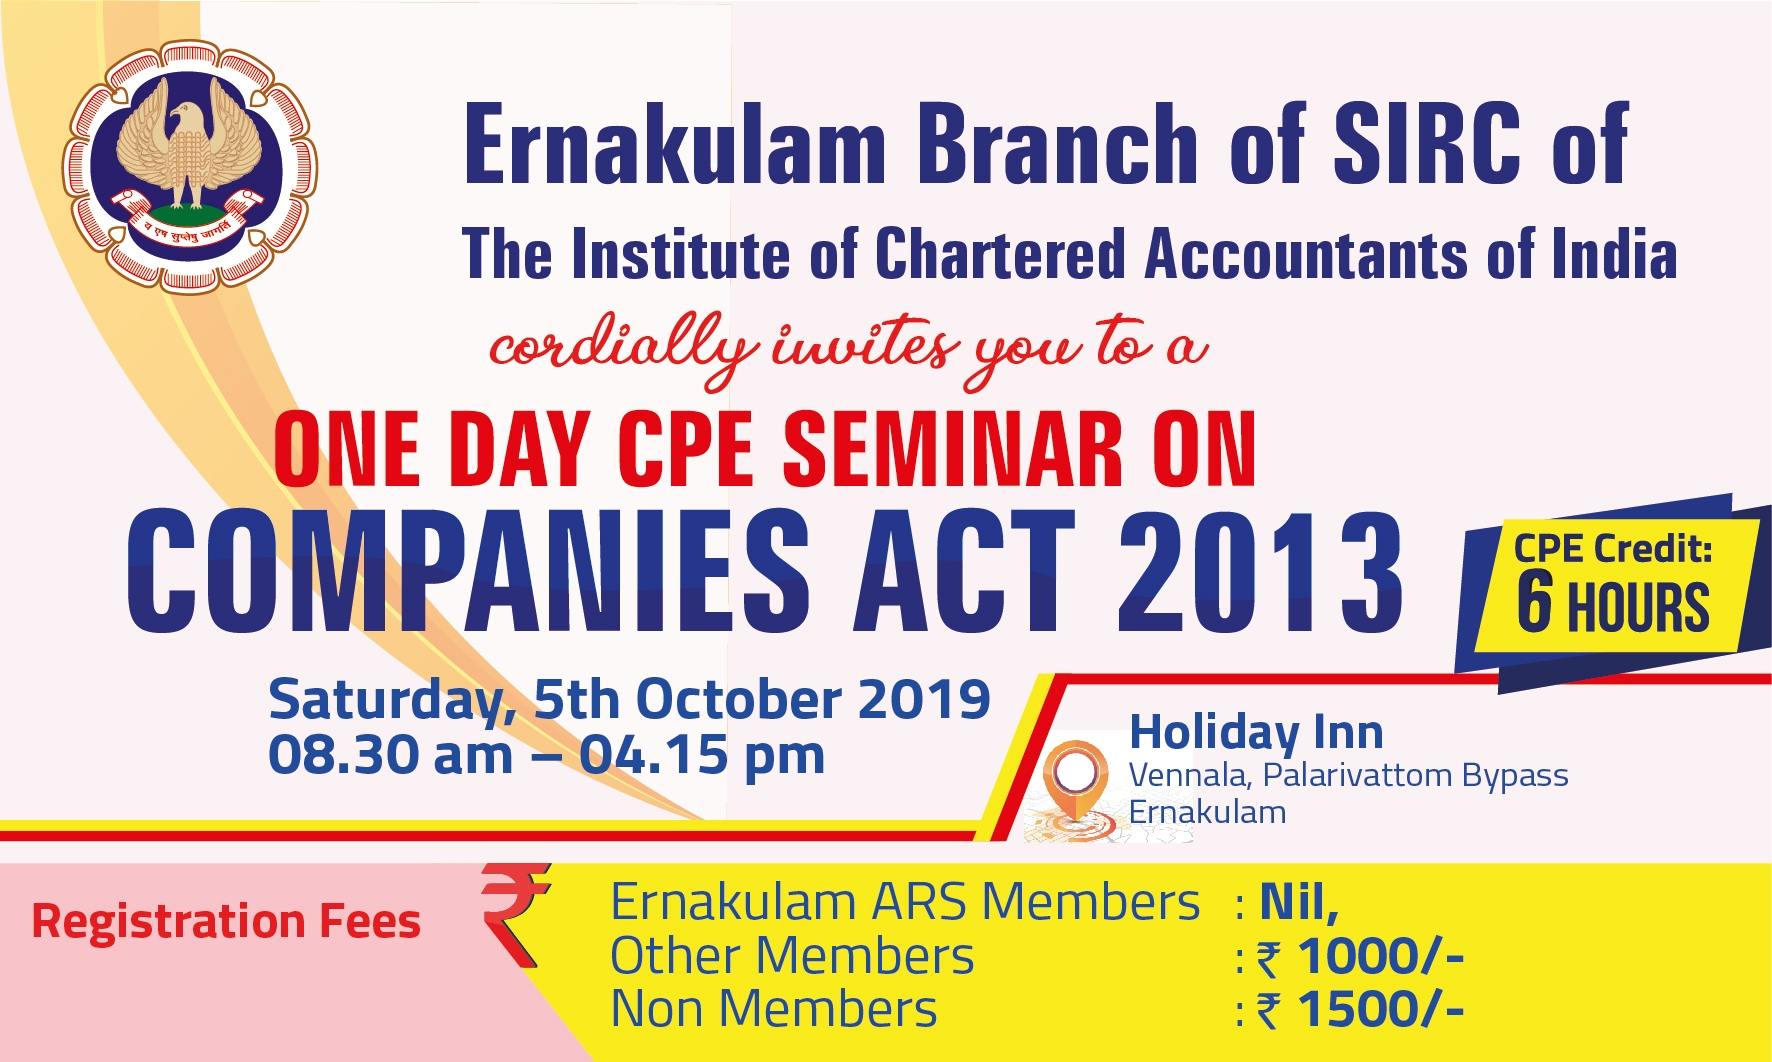 One Day CPE Seminar on Companies Act